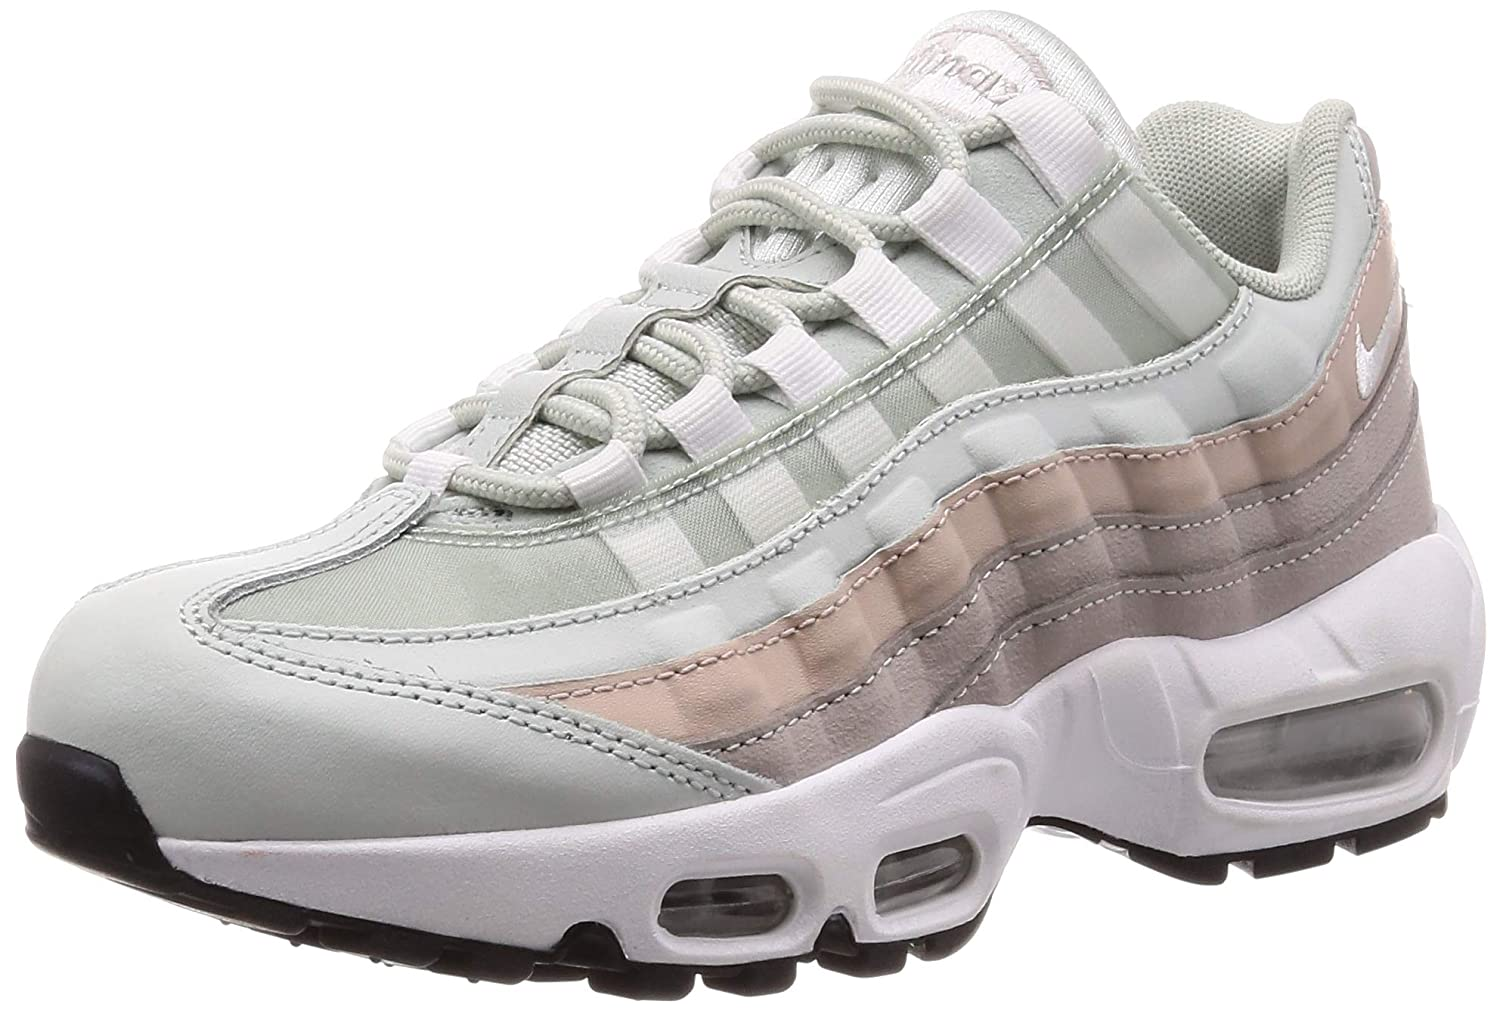 reputable site 45047 30d64 Nike Women's Air Max 95 Light Silver/Wht Running Shoe 8 Women US